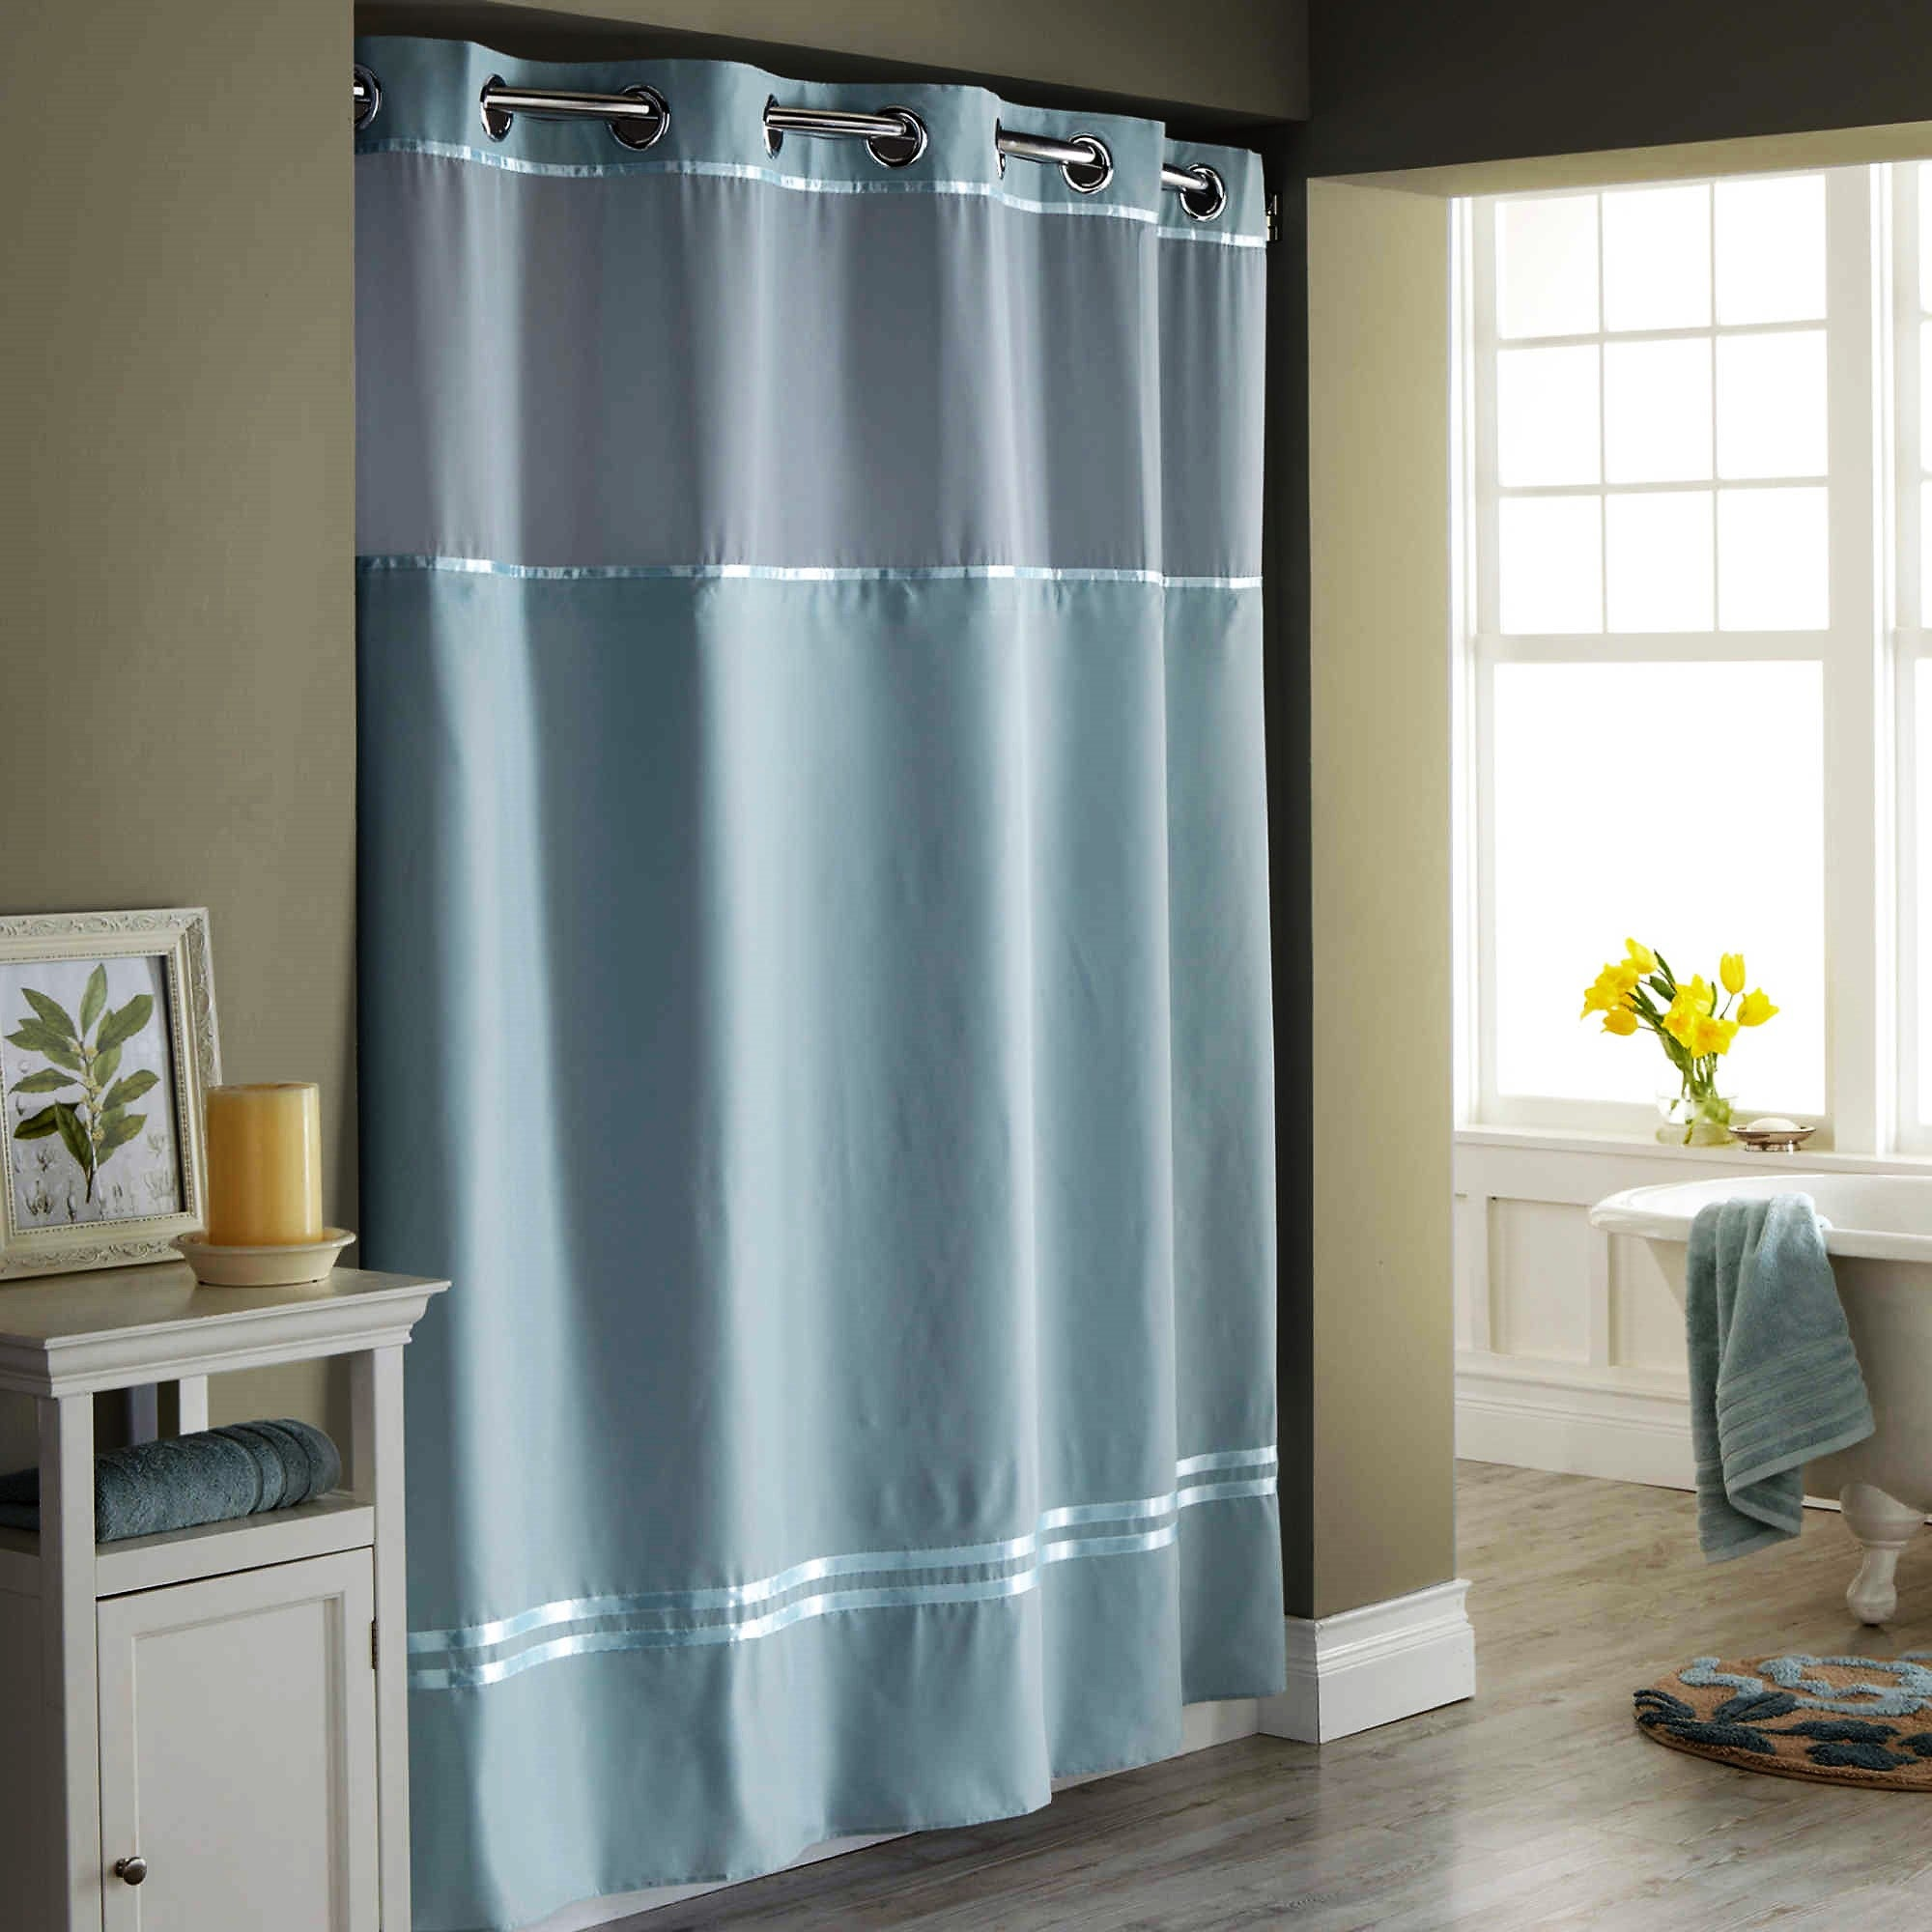 Hookless Fabric Shower Curtain and Liner – Give10Back.com